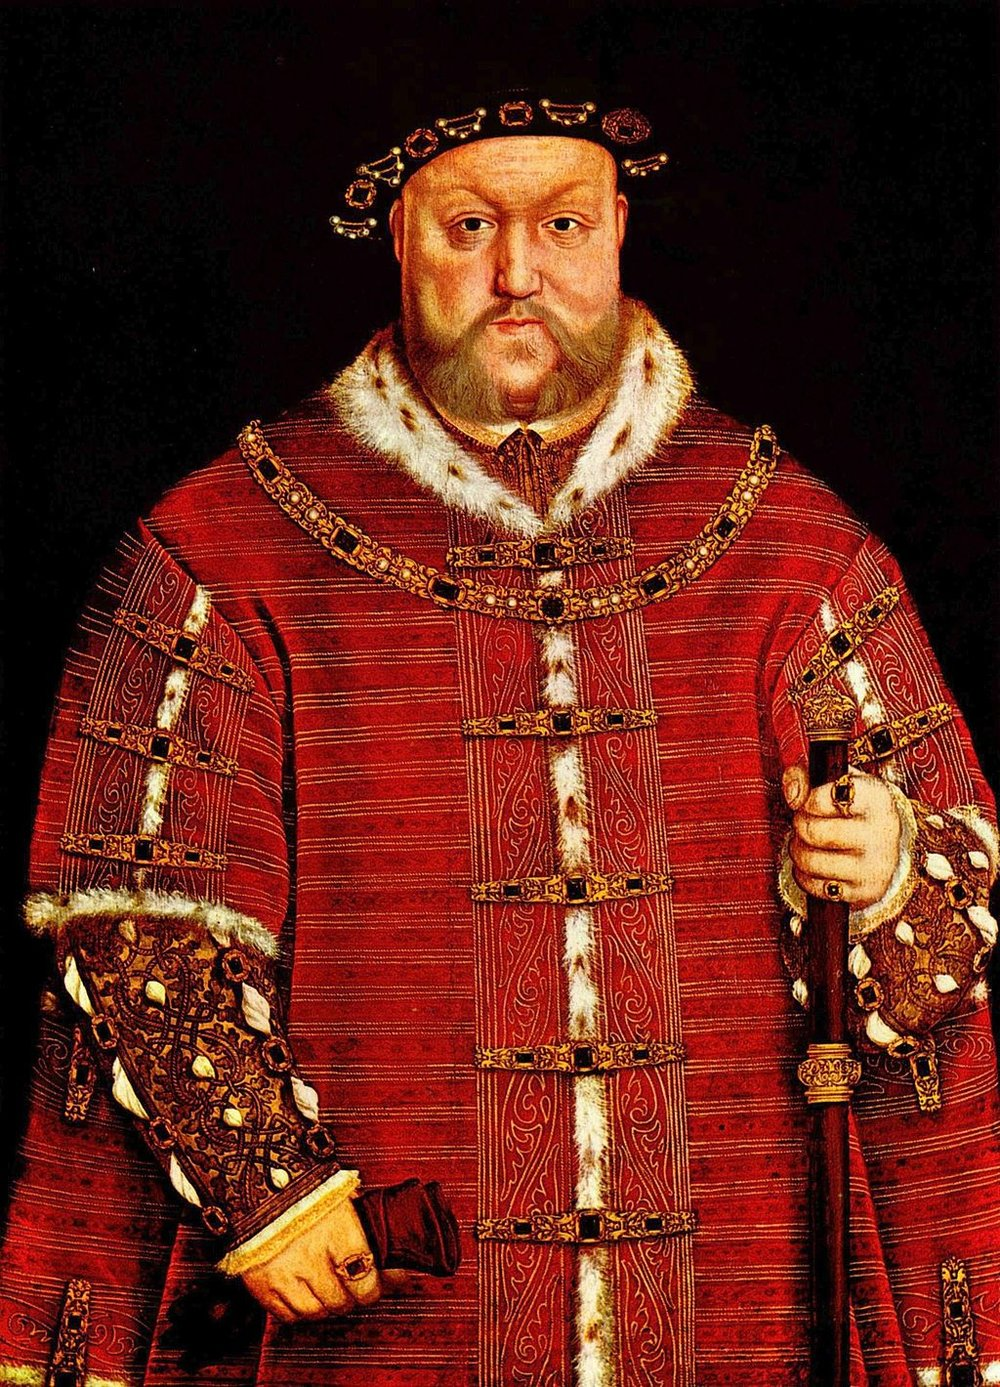 Portrait of King Henry VIII of England,